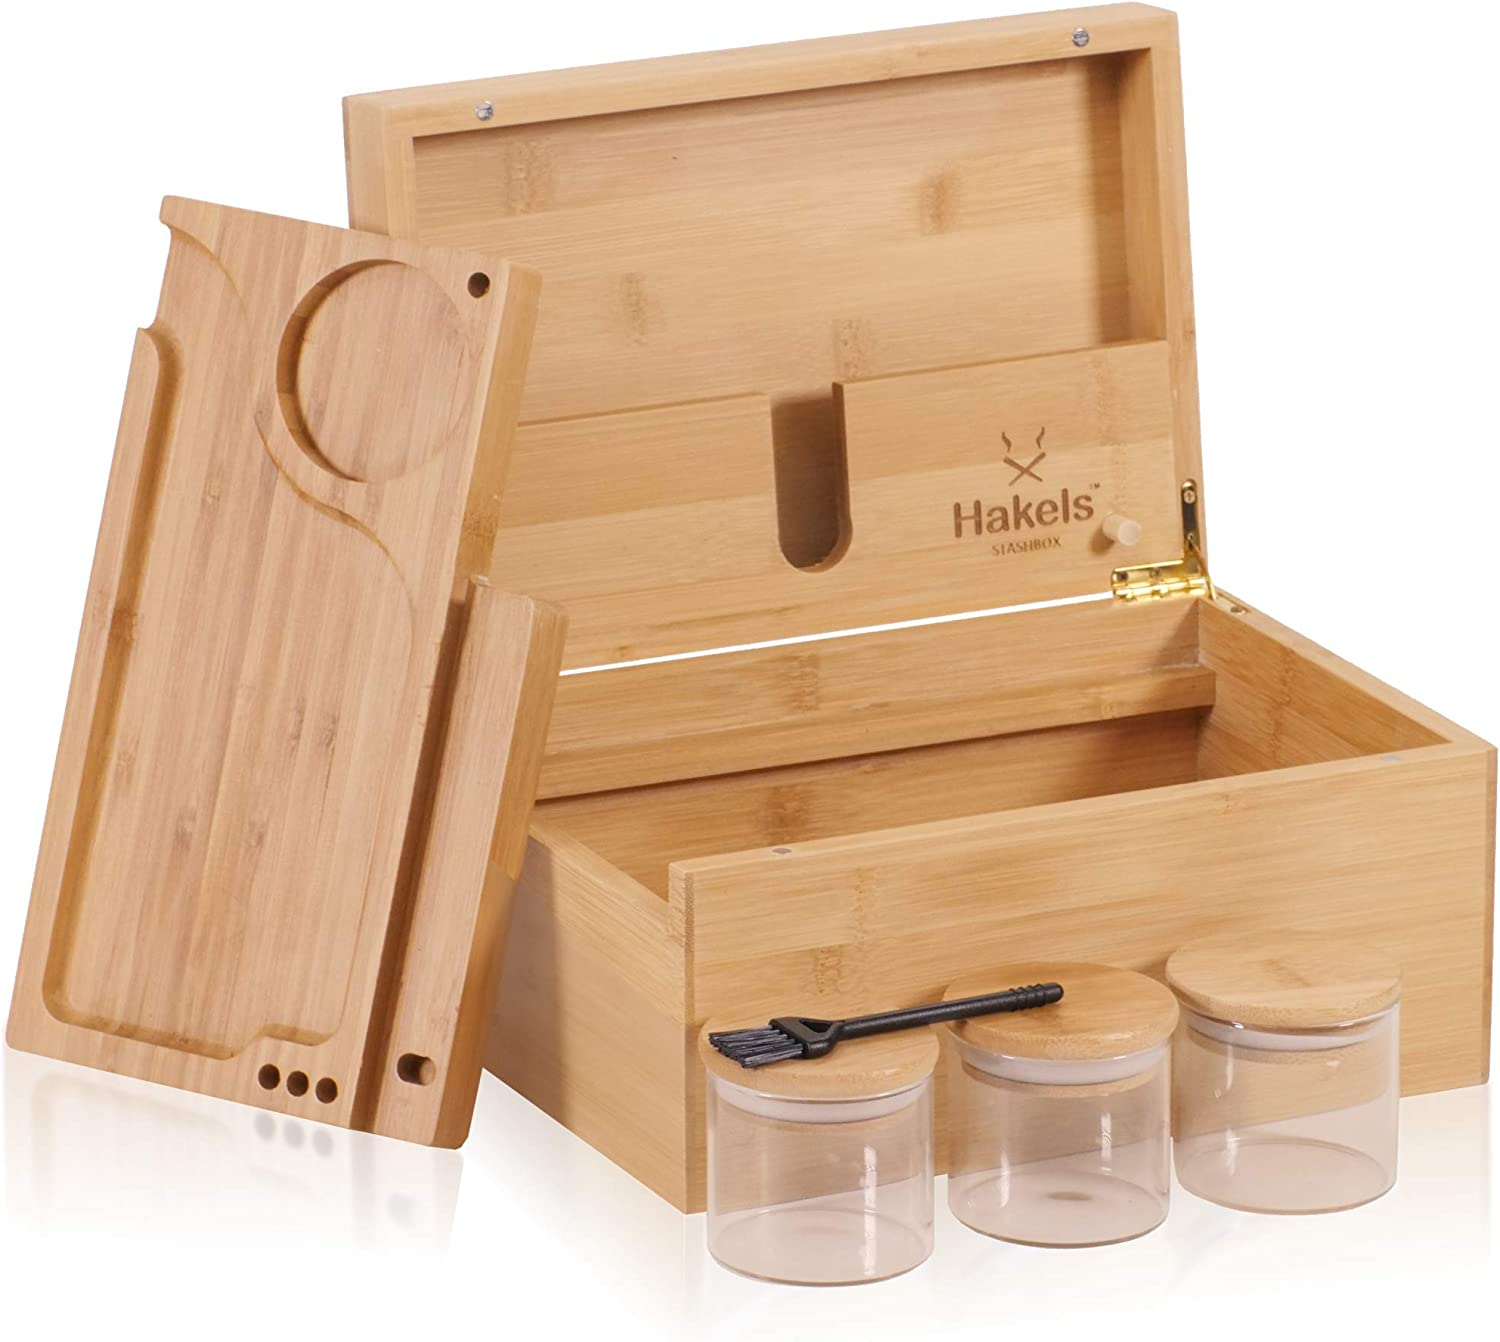 Large Wooden Bamboo Stash Under 2021 blast sales Box. With Sliding Rolling No Mess Tray